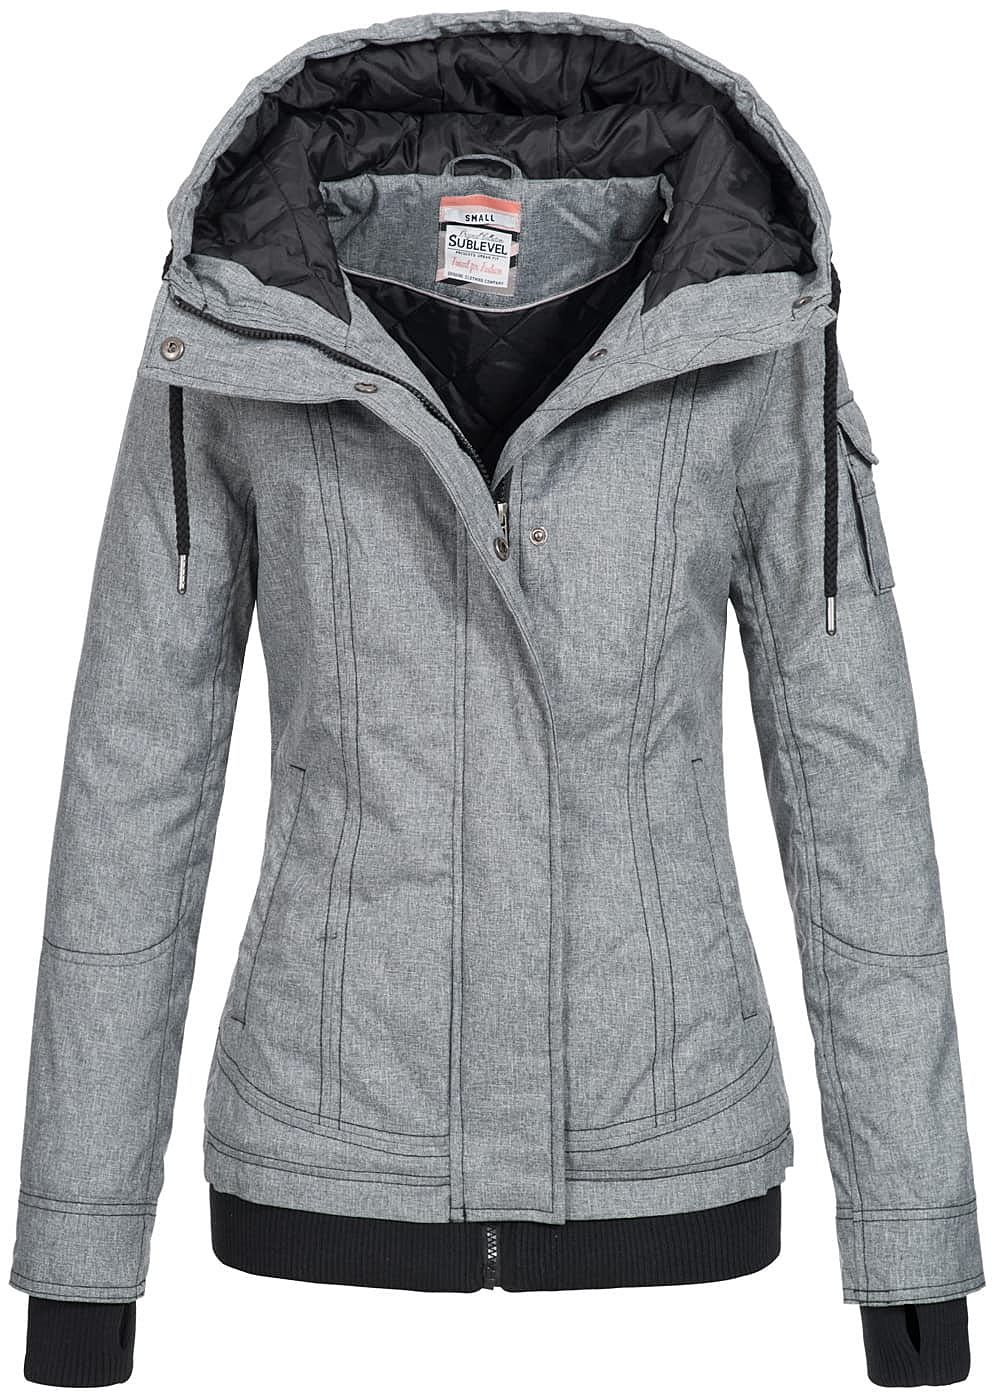 winterjacke damen pink columbia damen winterjacke go to hooded jacket pink ebay winterjacke. Black Bedroom Furniture Sets. Home Design Ideas